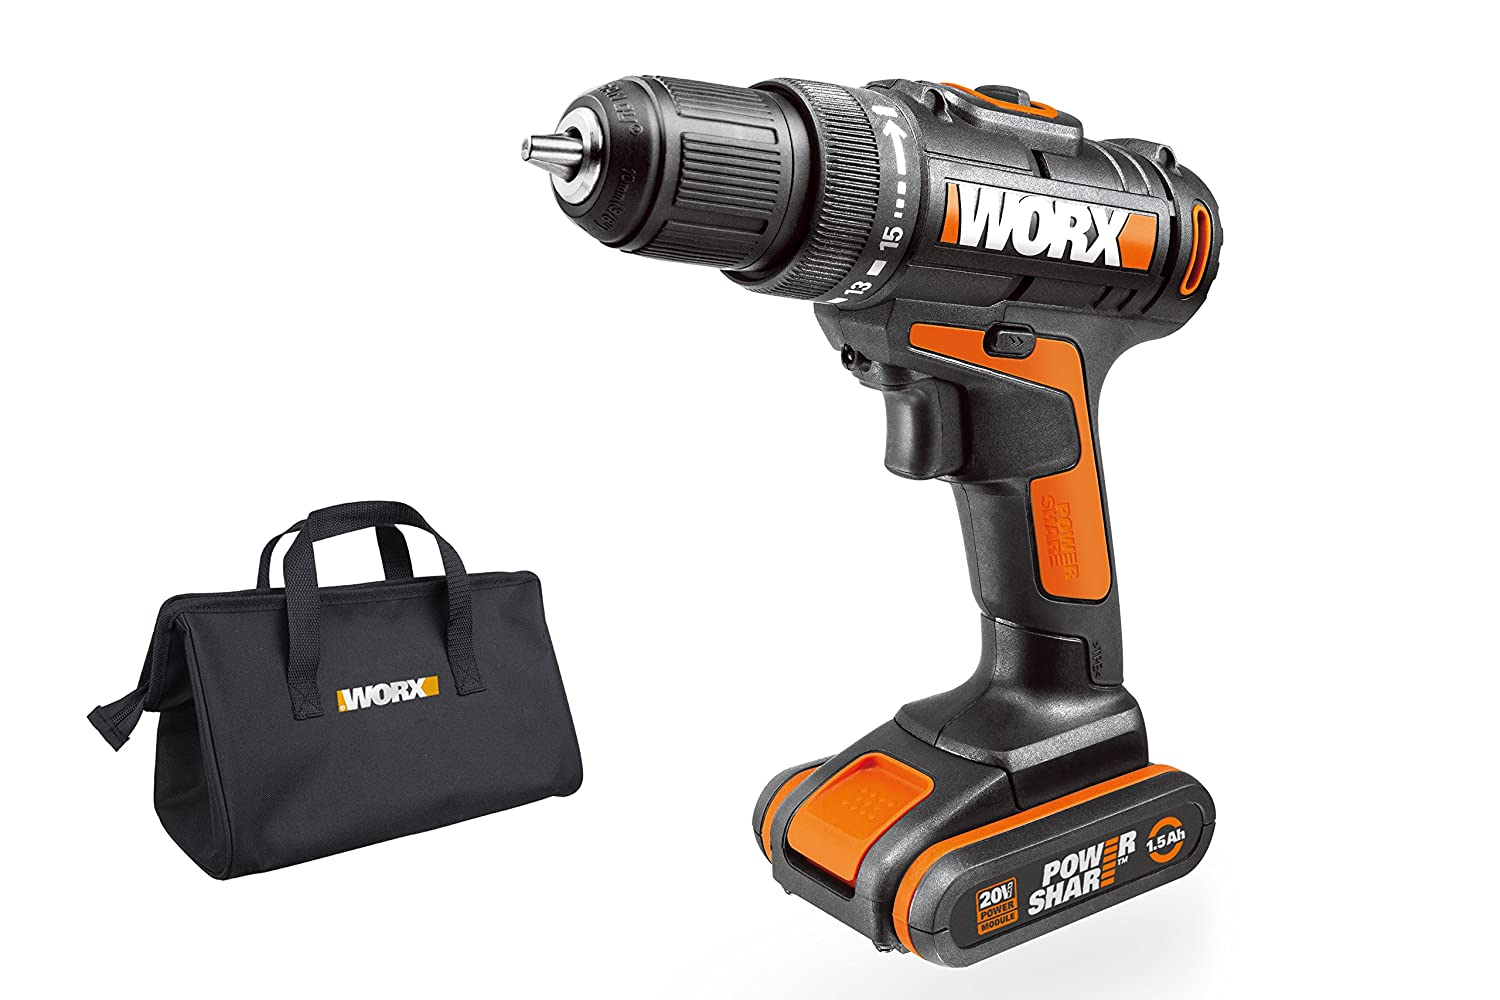 WORX WX100.1 18V 20V MAX Cordless Drill Driver with 1.5 Ah Battery